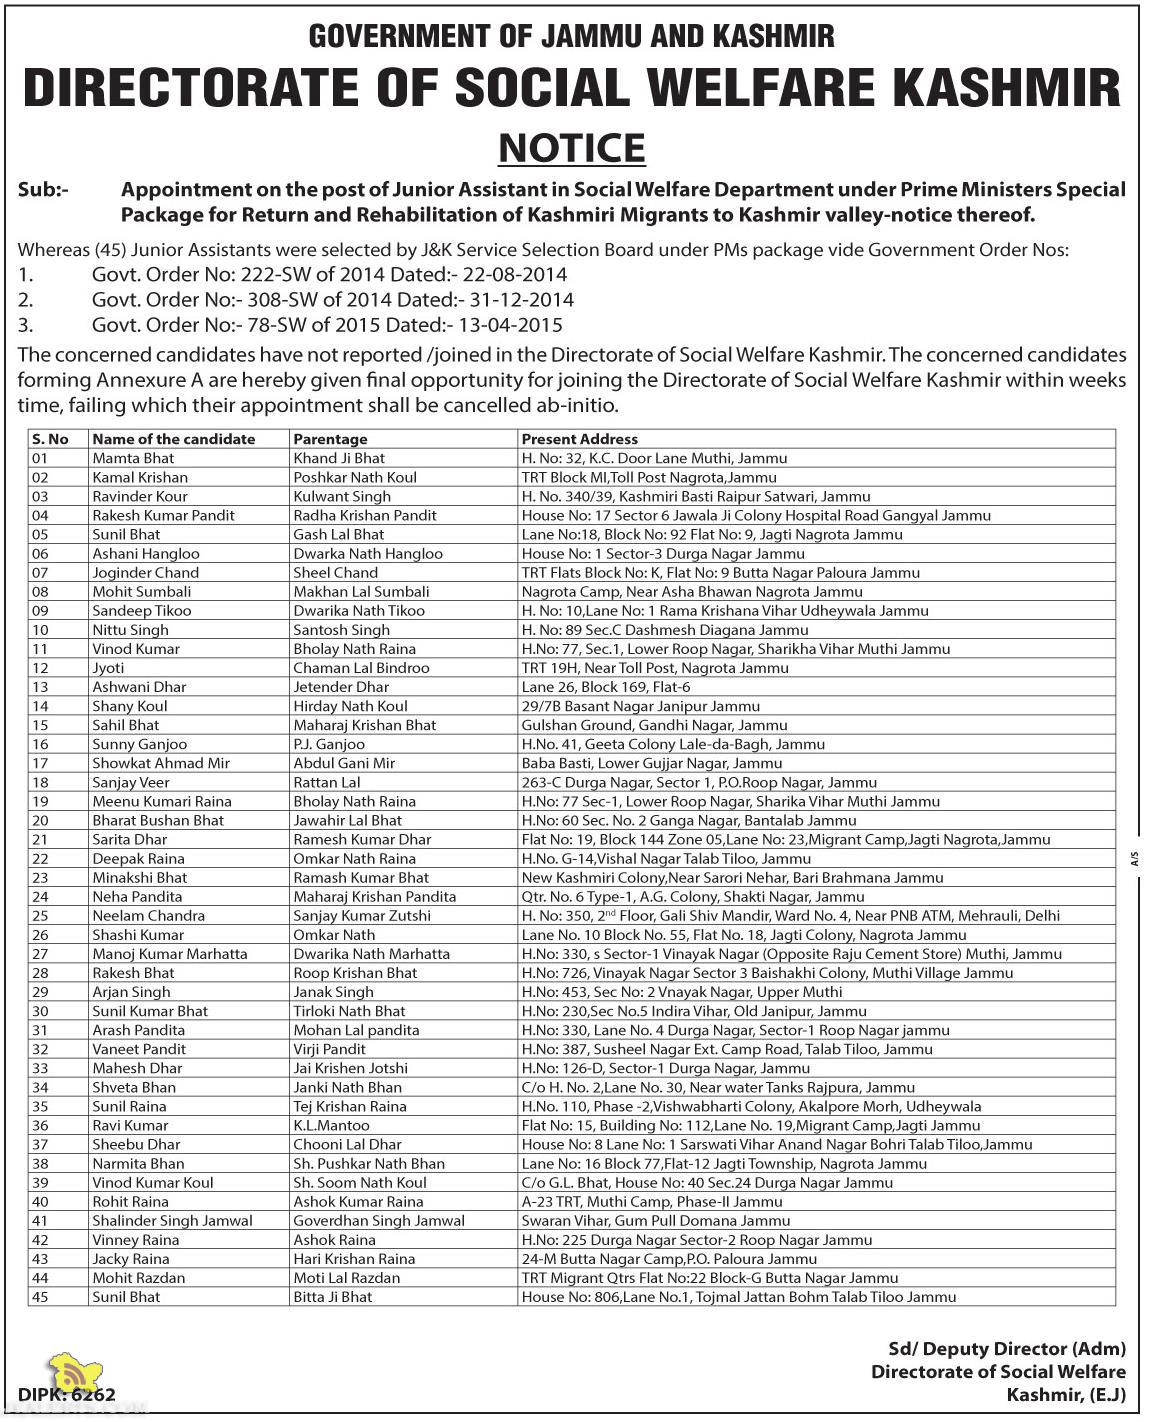 Appointment on the post of Junior Assistant in Social Welfare Department